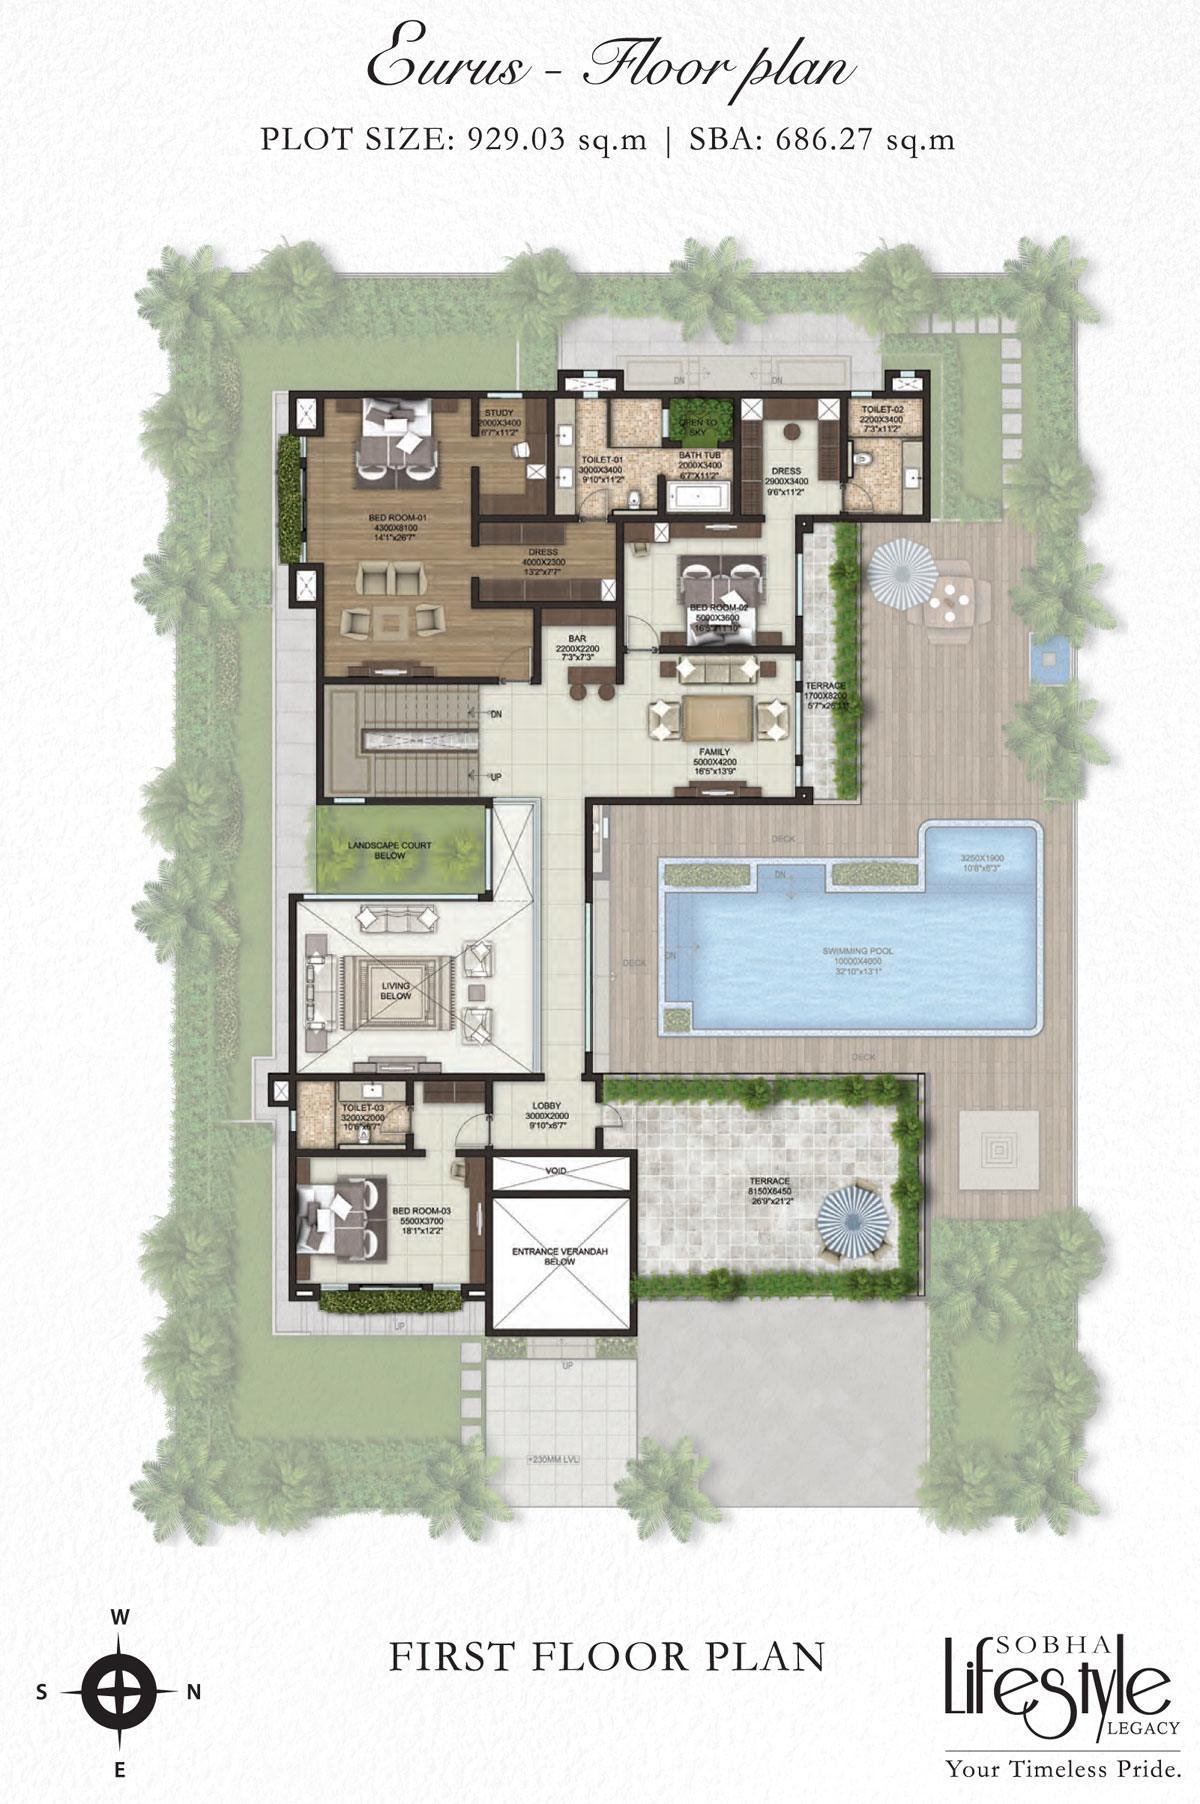 Sobha lifestyle legacy 4 bedroom villas bangalore for 4 bedroom villa plans